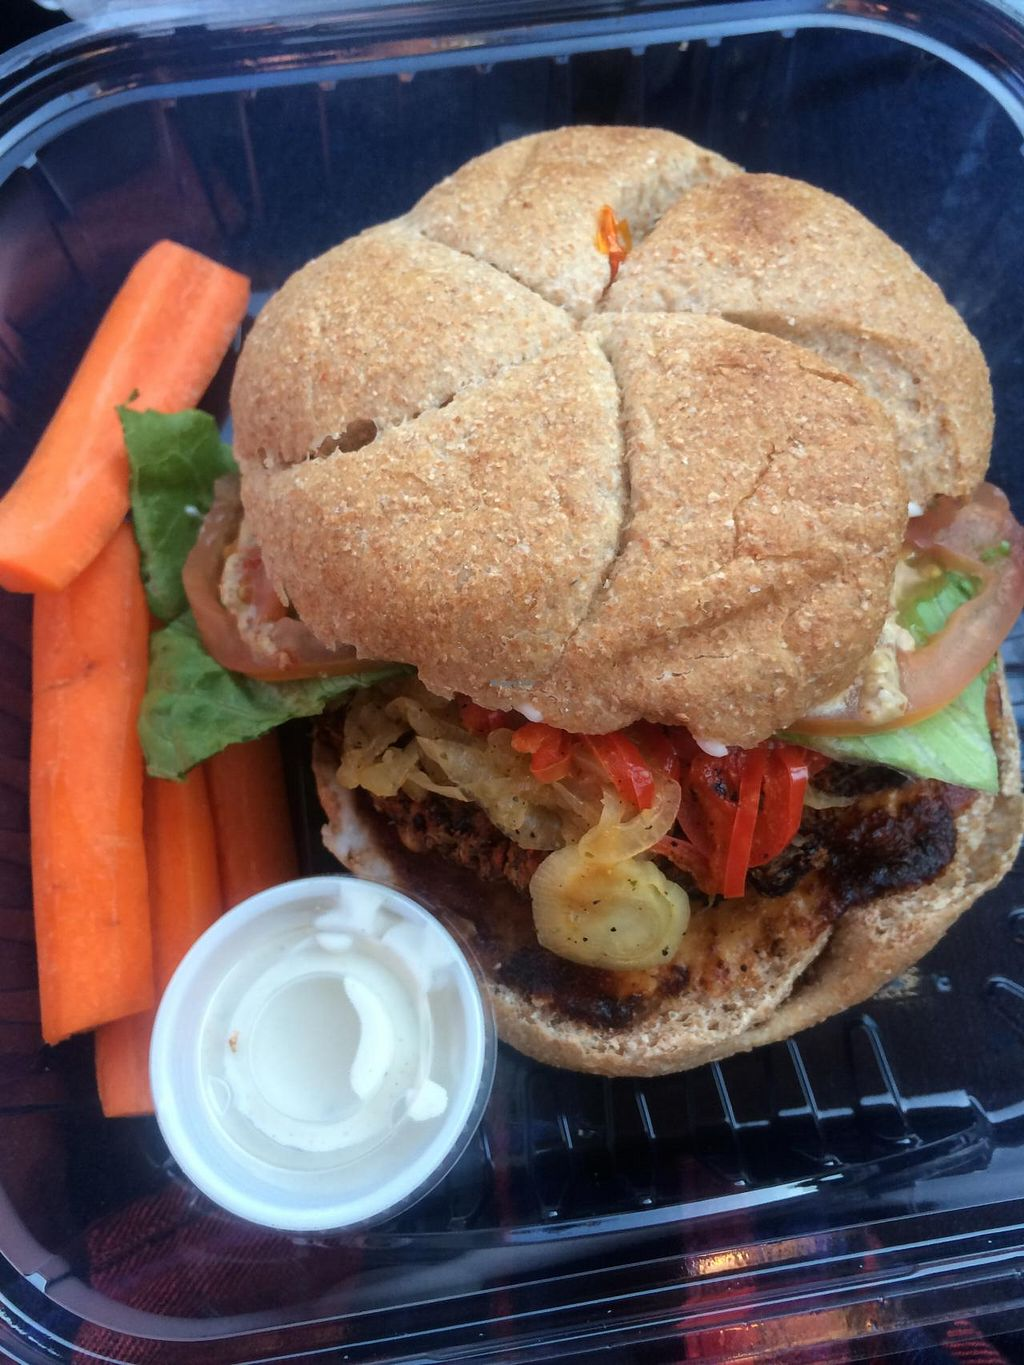 """Photo of Ginger's Garden Cafe  by <a href=""""/members/profile/Meggie%20and%20Ben"""">Meggie and Ben</a> <br/>Grilled portobello burger with sauteed onions and peppers, lettuce, tomato, avocado, mustard, and vegenaise <br/> September 27, 2014  - <a href='/contact/abuse/image/16225/81346'>Report</a>"""